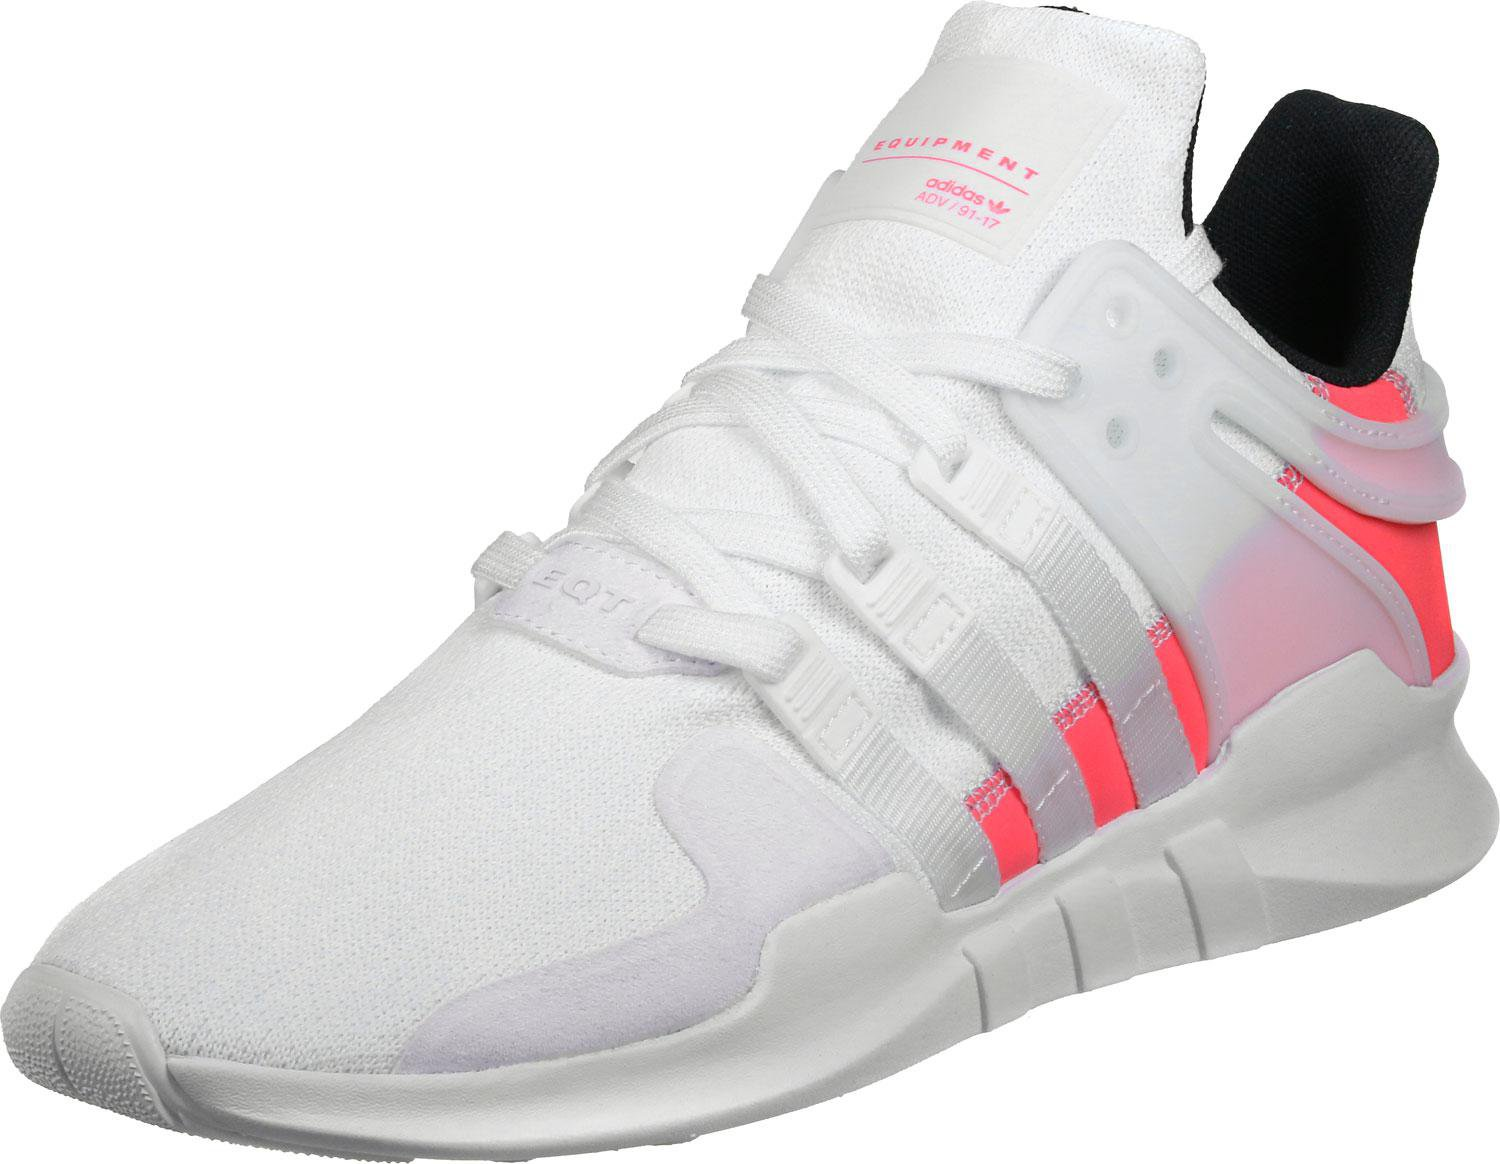 Kaufen Billig Adidas Originals DamenHerren Eqt Support Rf